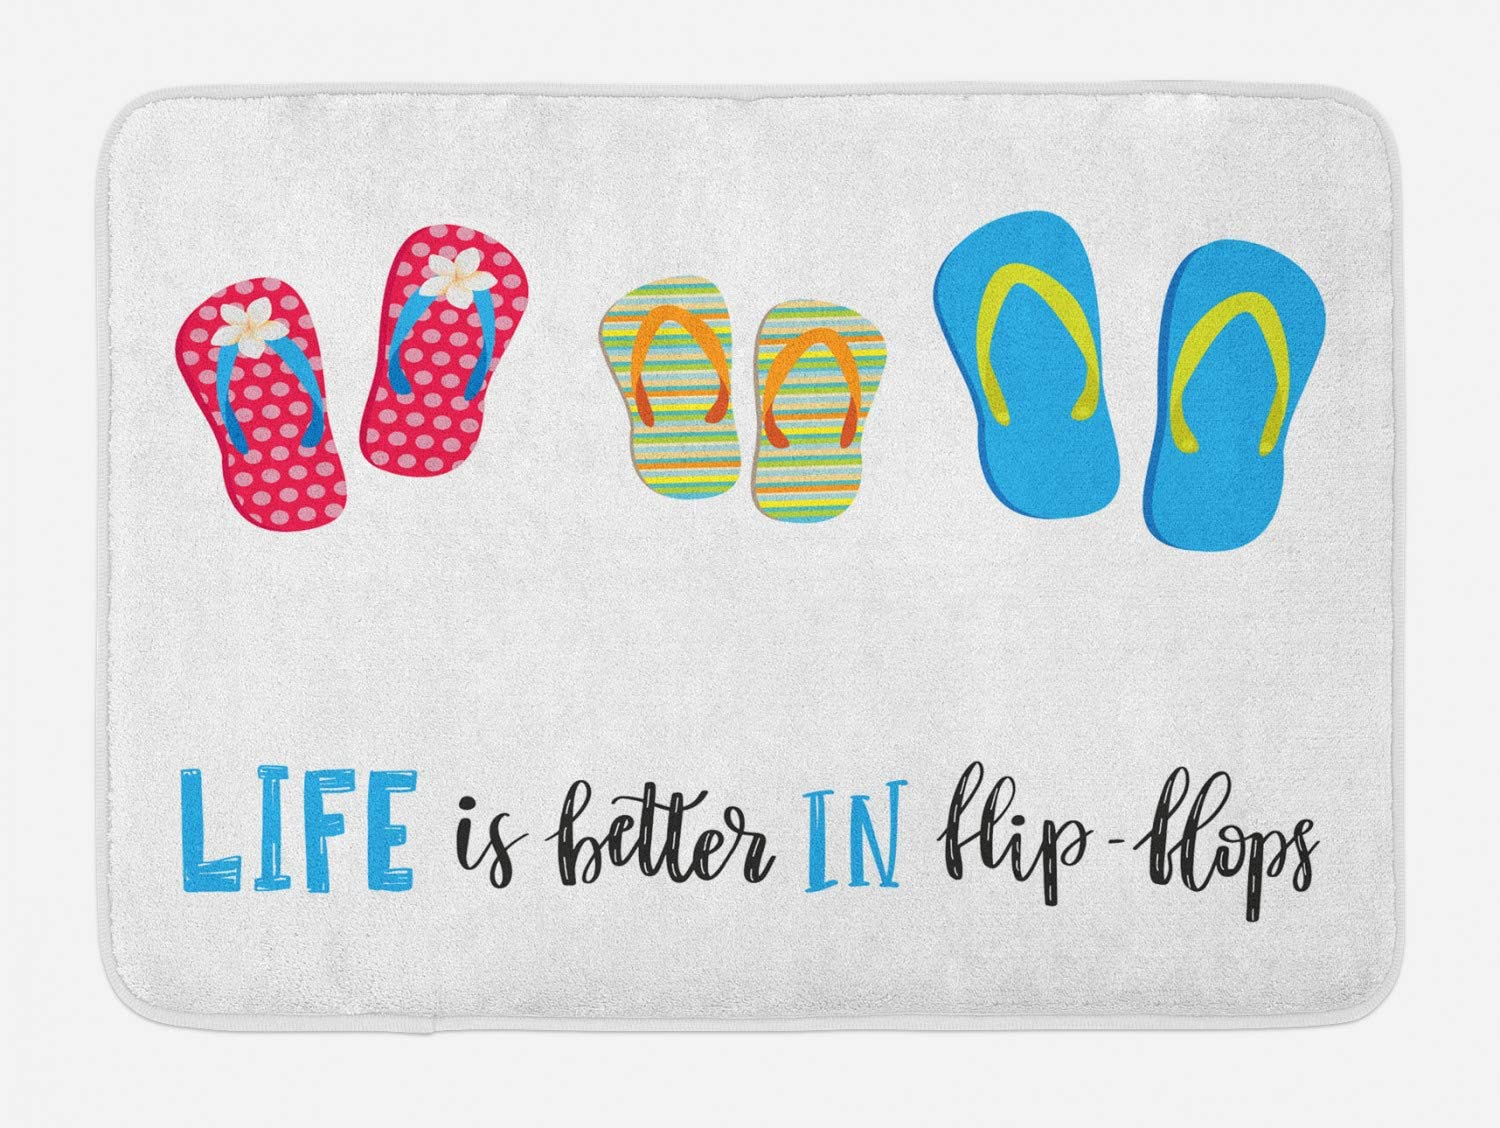 "Lunarable Ocean Saying Bath Mat, Summer Love Saying with Life is Better in Flip Flops Calligraphy Beach Shoes, Plush Bathroom Decor Mat with Non Slip Backing, 29.5"" X 17.5"", White Blue"